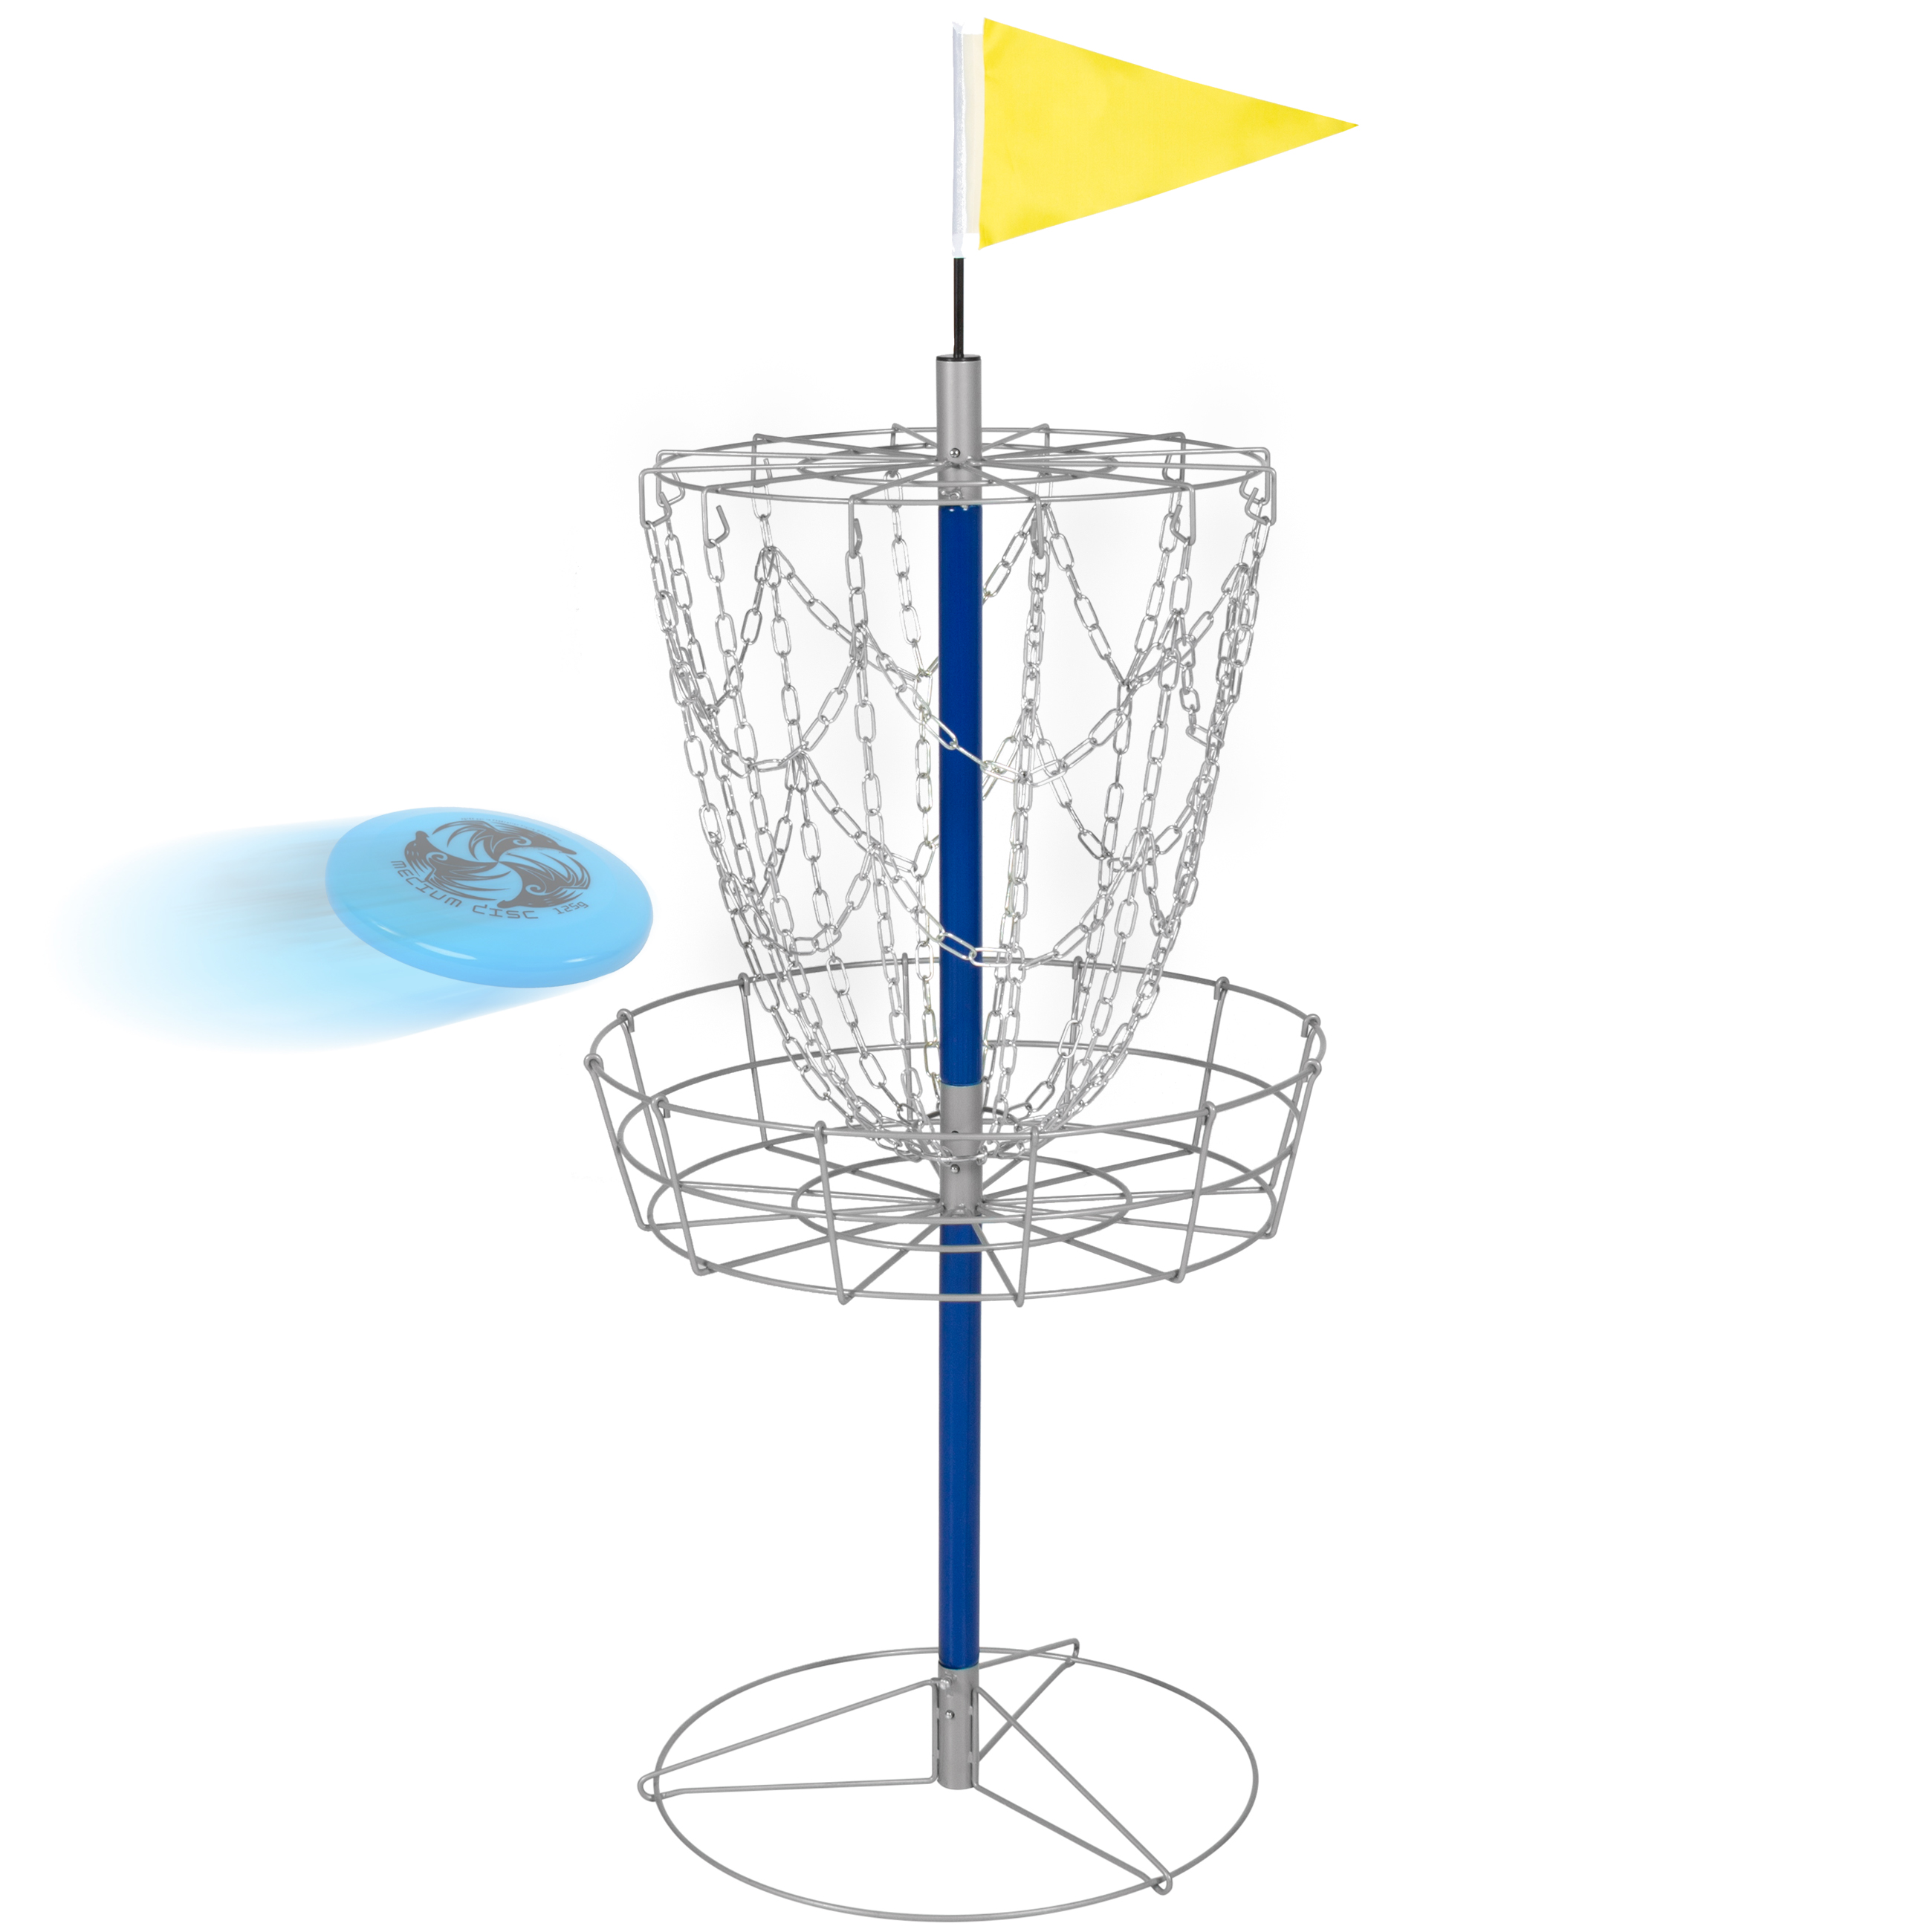 Best Choice Products Portable Disc Golf Basket Double Chains Steel Frisbee Hole